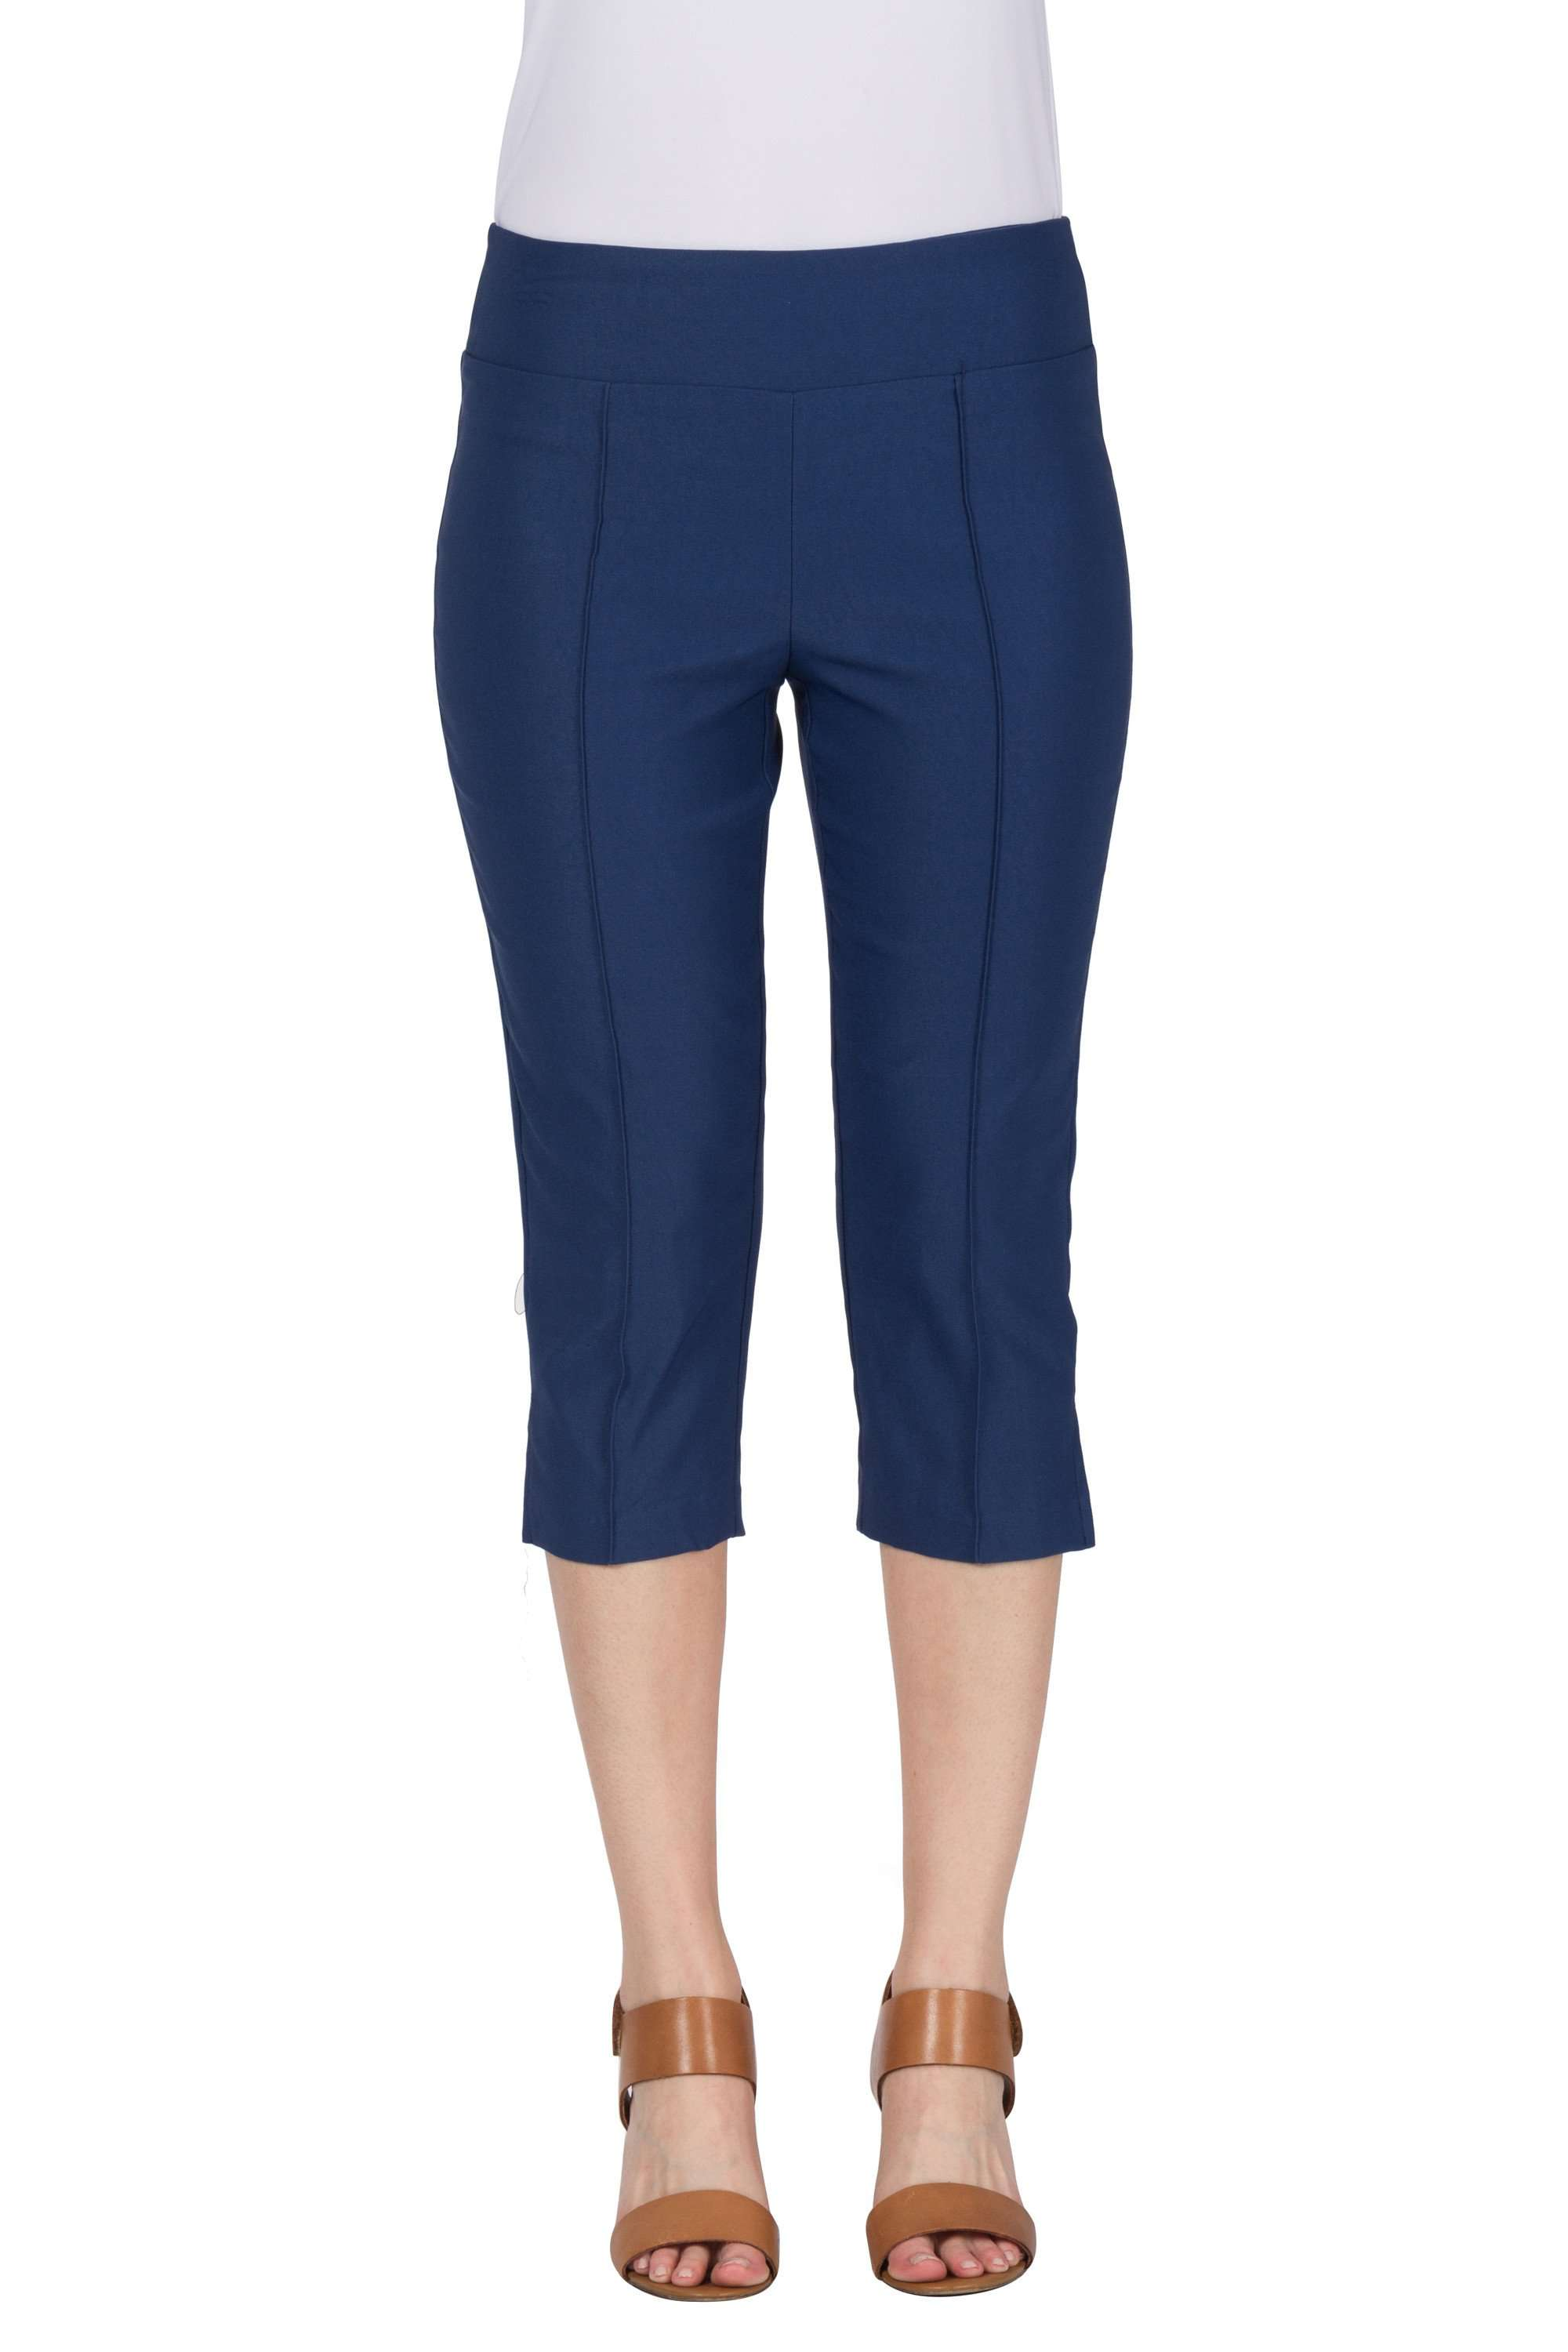 Capri Indigo Blue Stretch Fabric Quality Made in Canada - Yvonne Marie